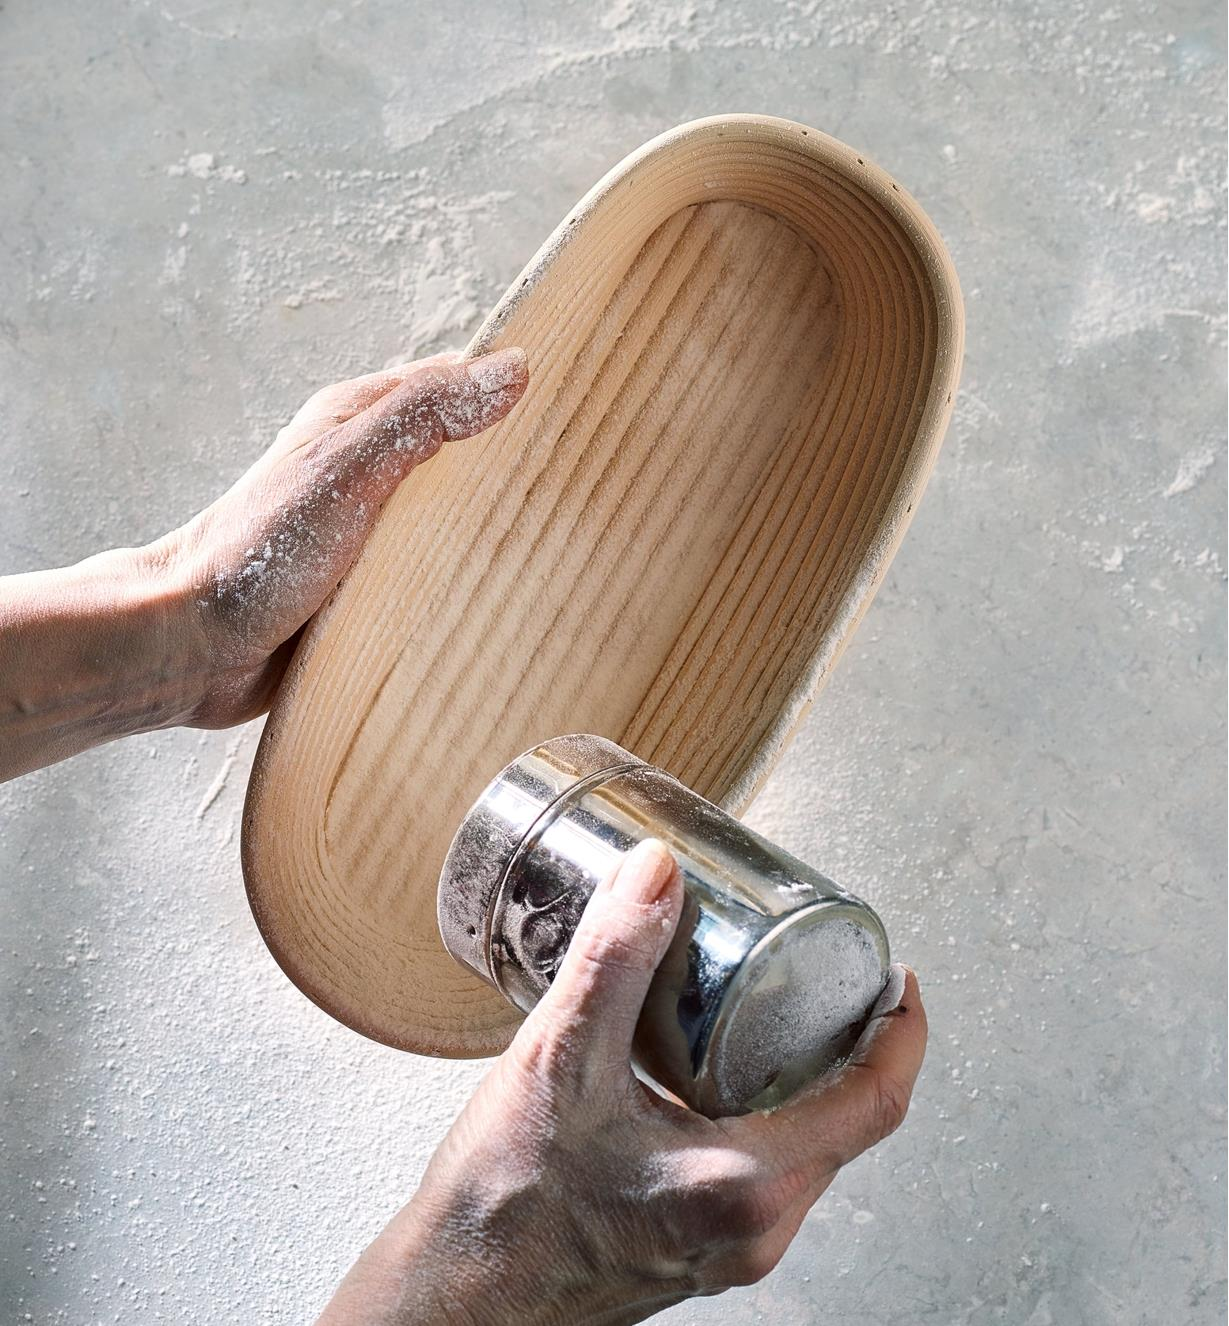 Using a stainless-steel flour shaker to dust the oval banneton with flour